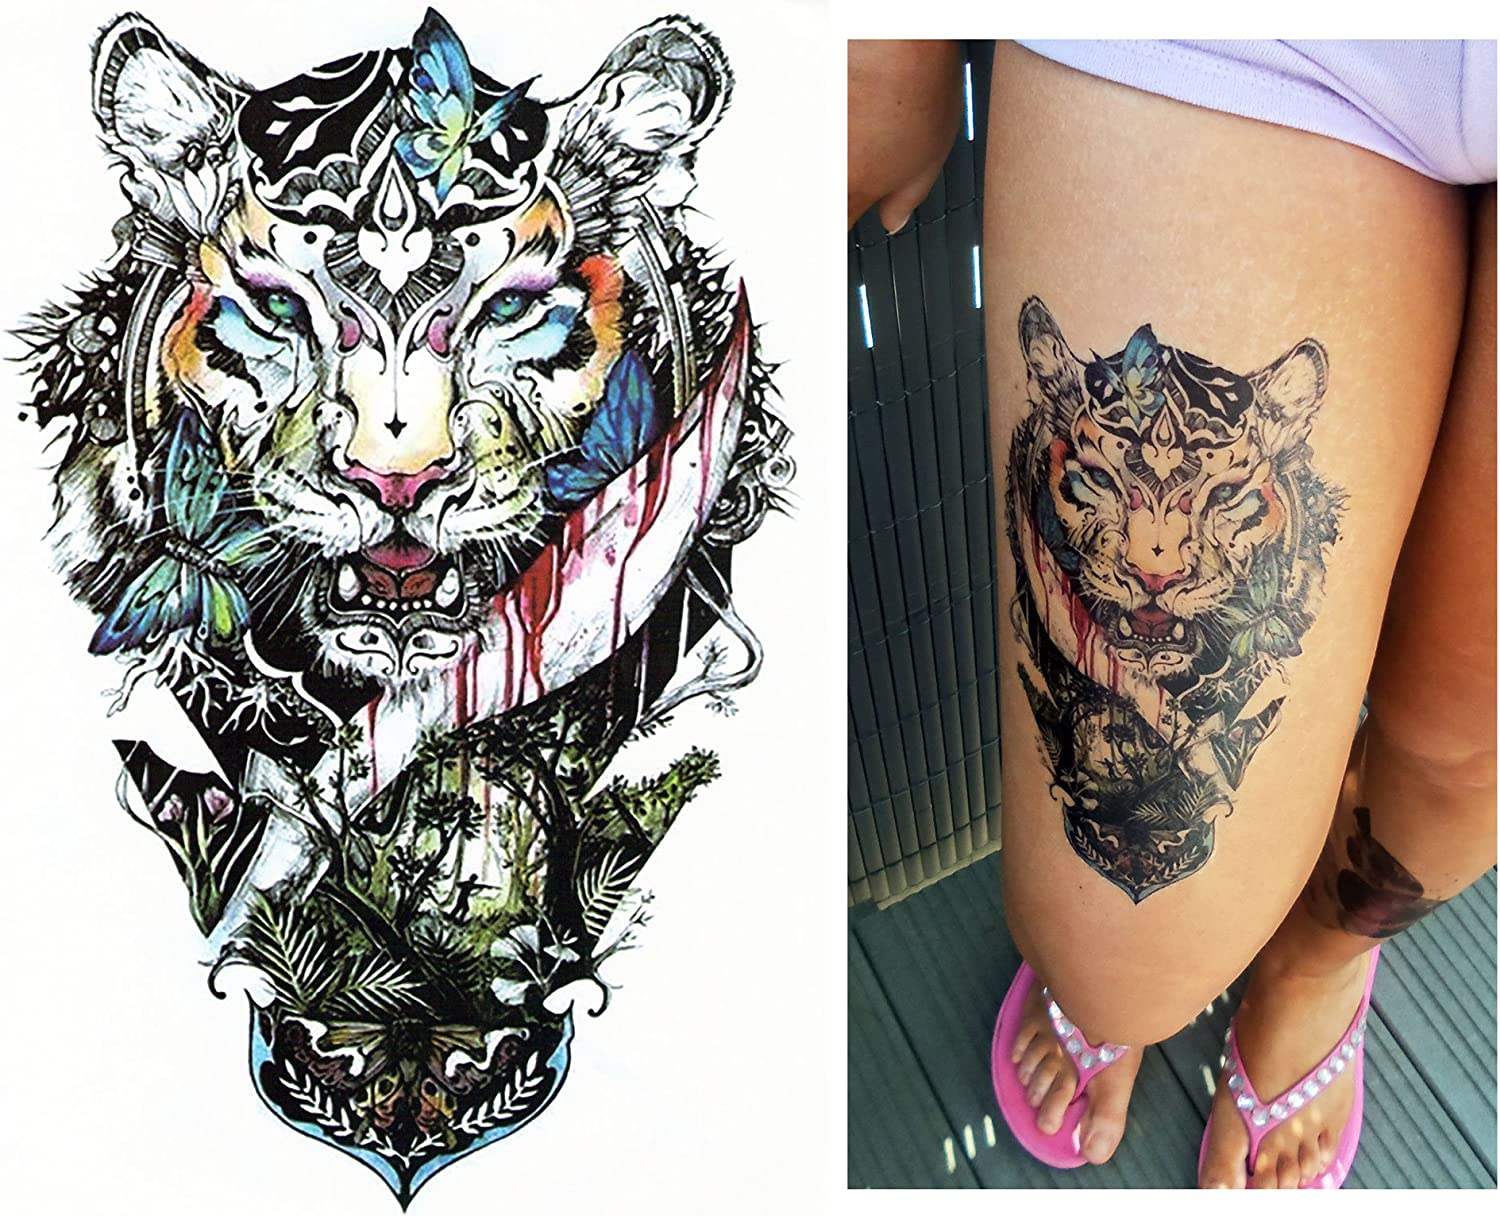 Tatuajes temporales Tempo rary Tattoo Fake Tattoo – De Tigre ...